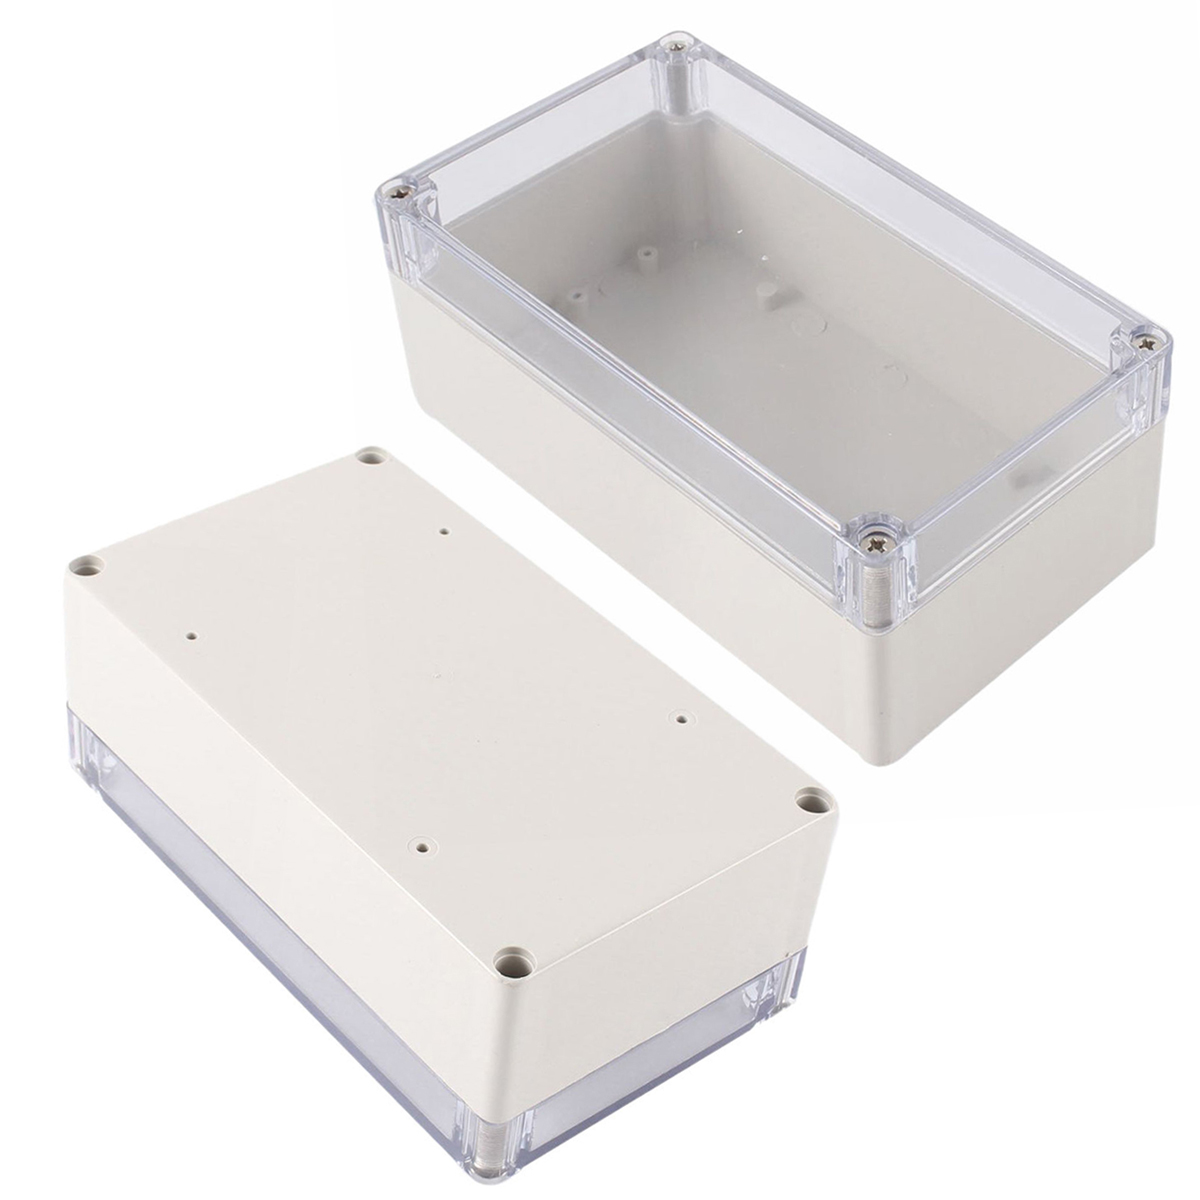 1pc Mayitr Waterproof Enclosure Case Clear Cover Plastic DIY Electronic Project Instrument Box 158mmx90mmx60mm 1pc waterproof enclosure box plastic electronic project instrument case 200x120x75mm